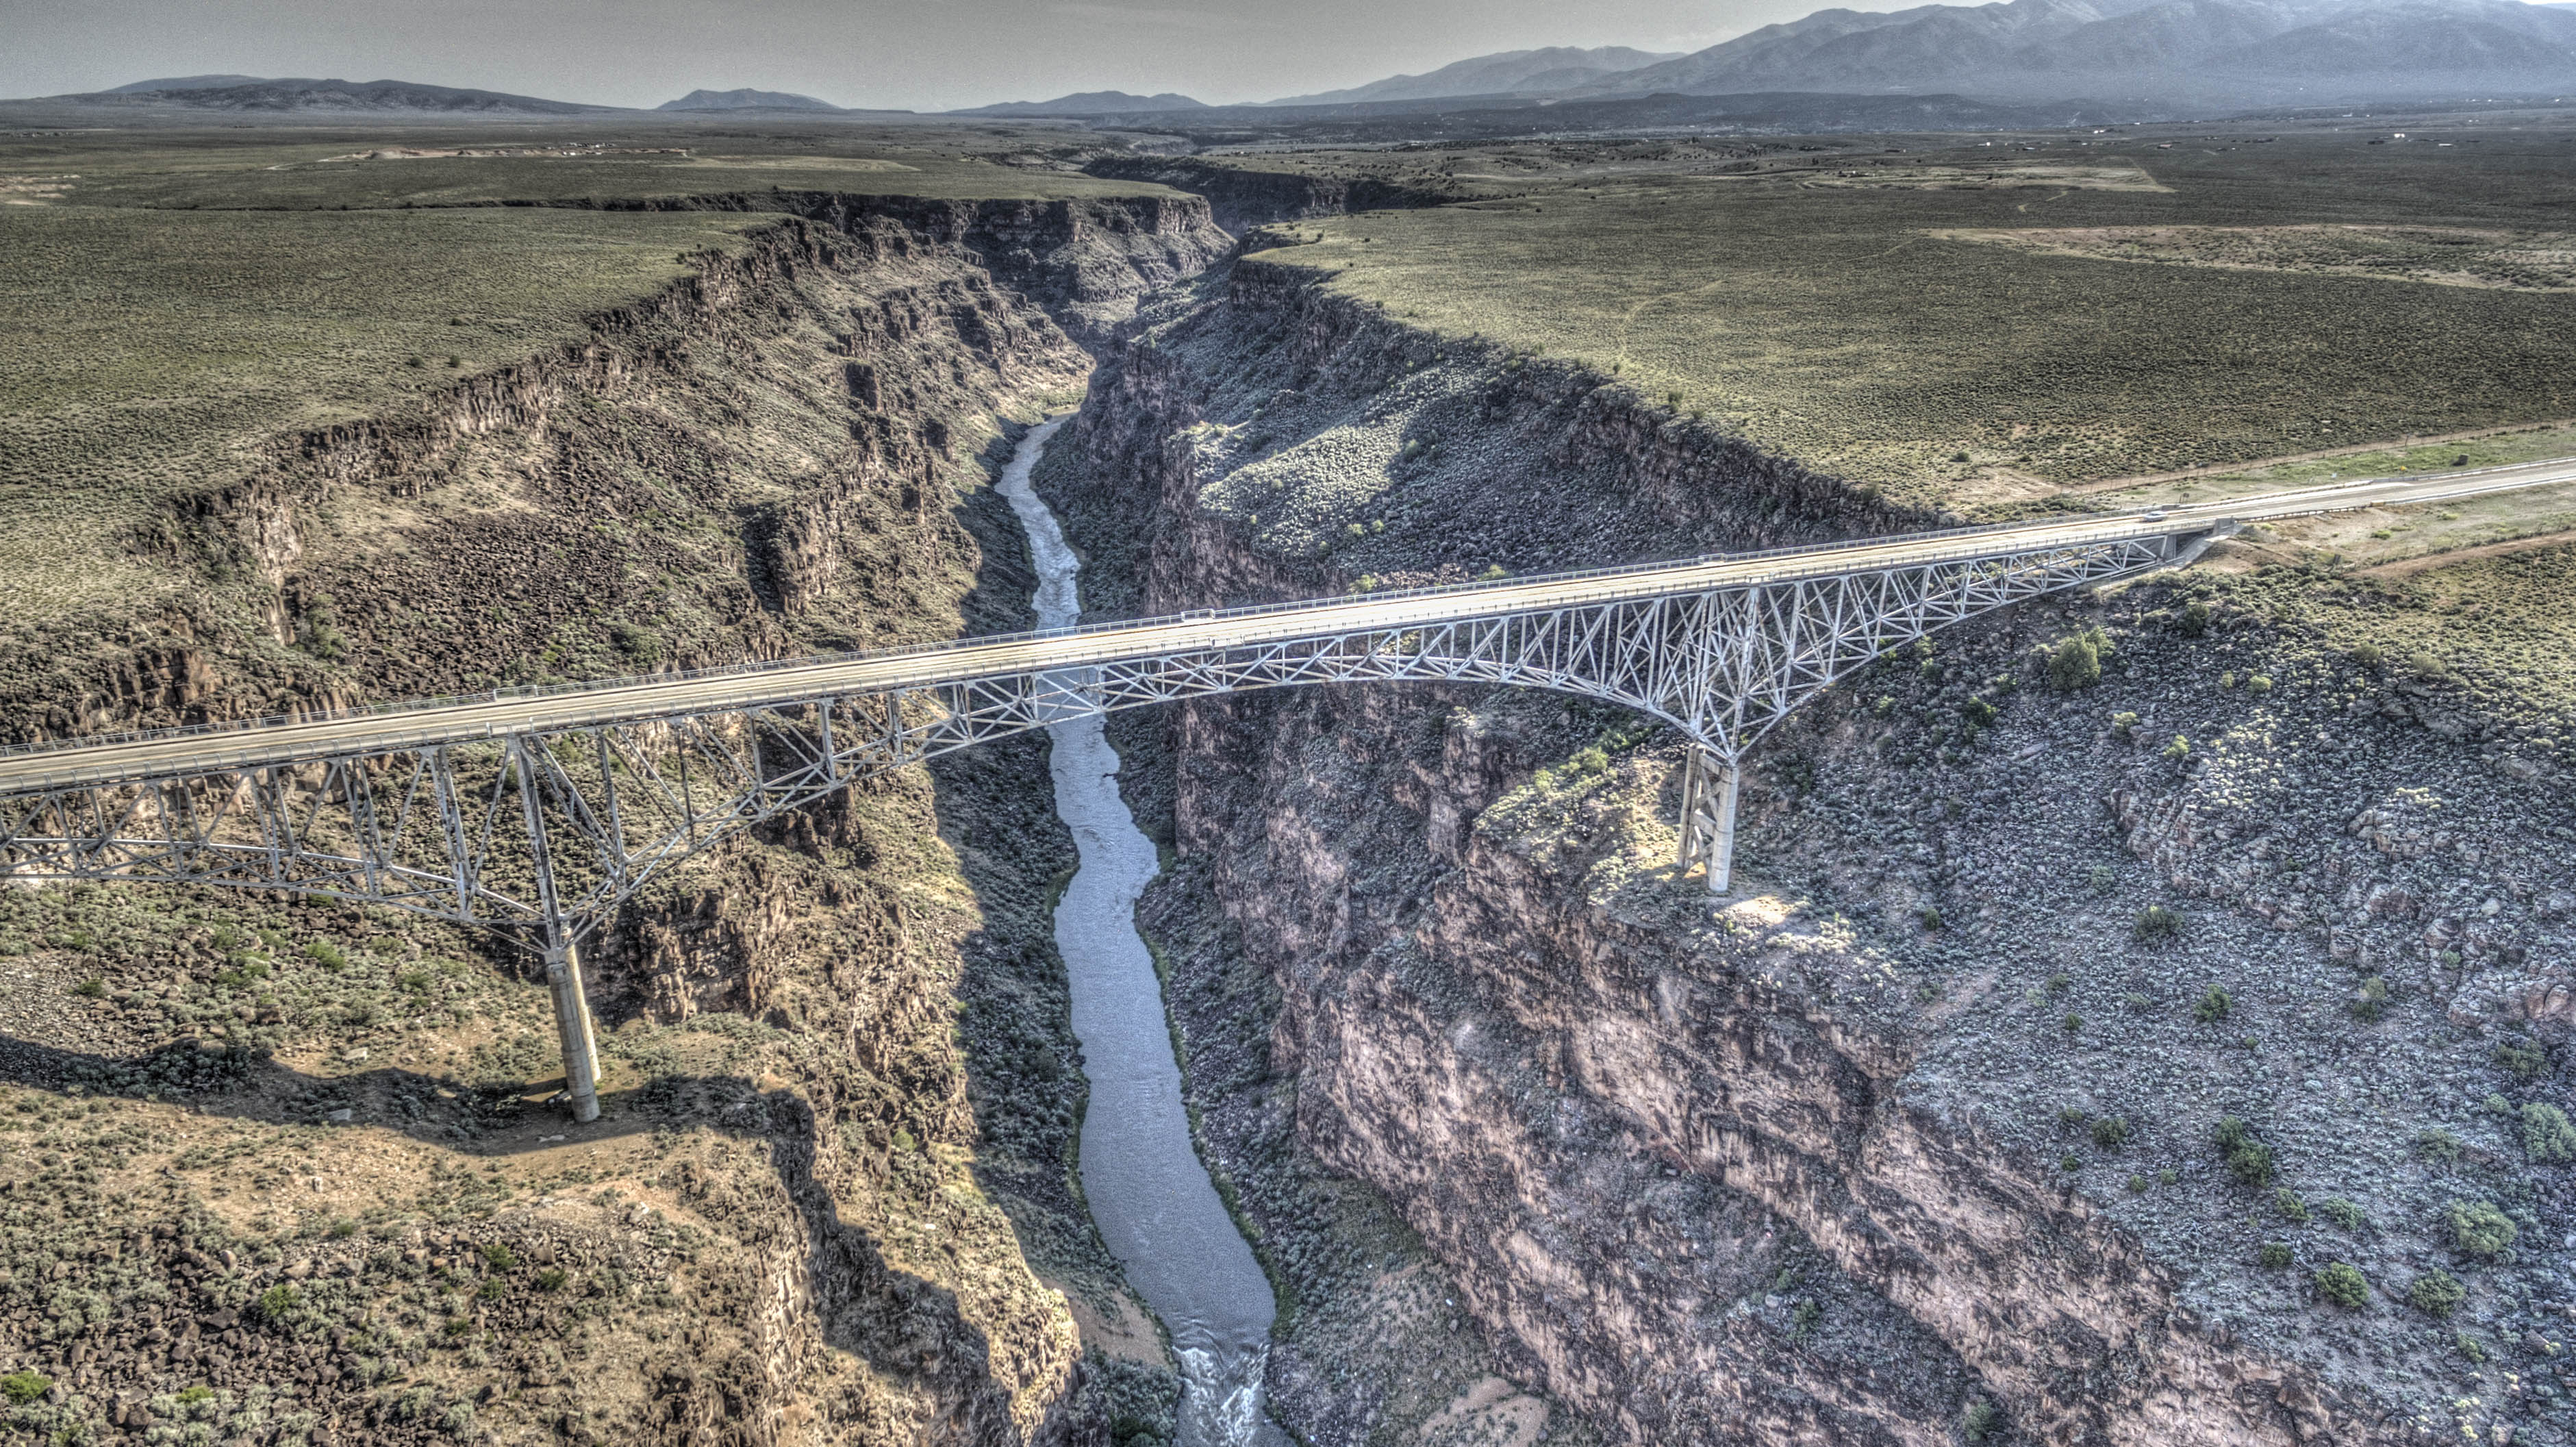 The Timeless Taos Gorge